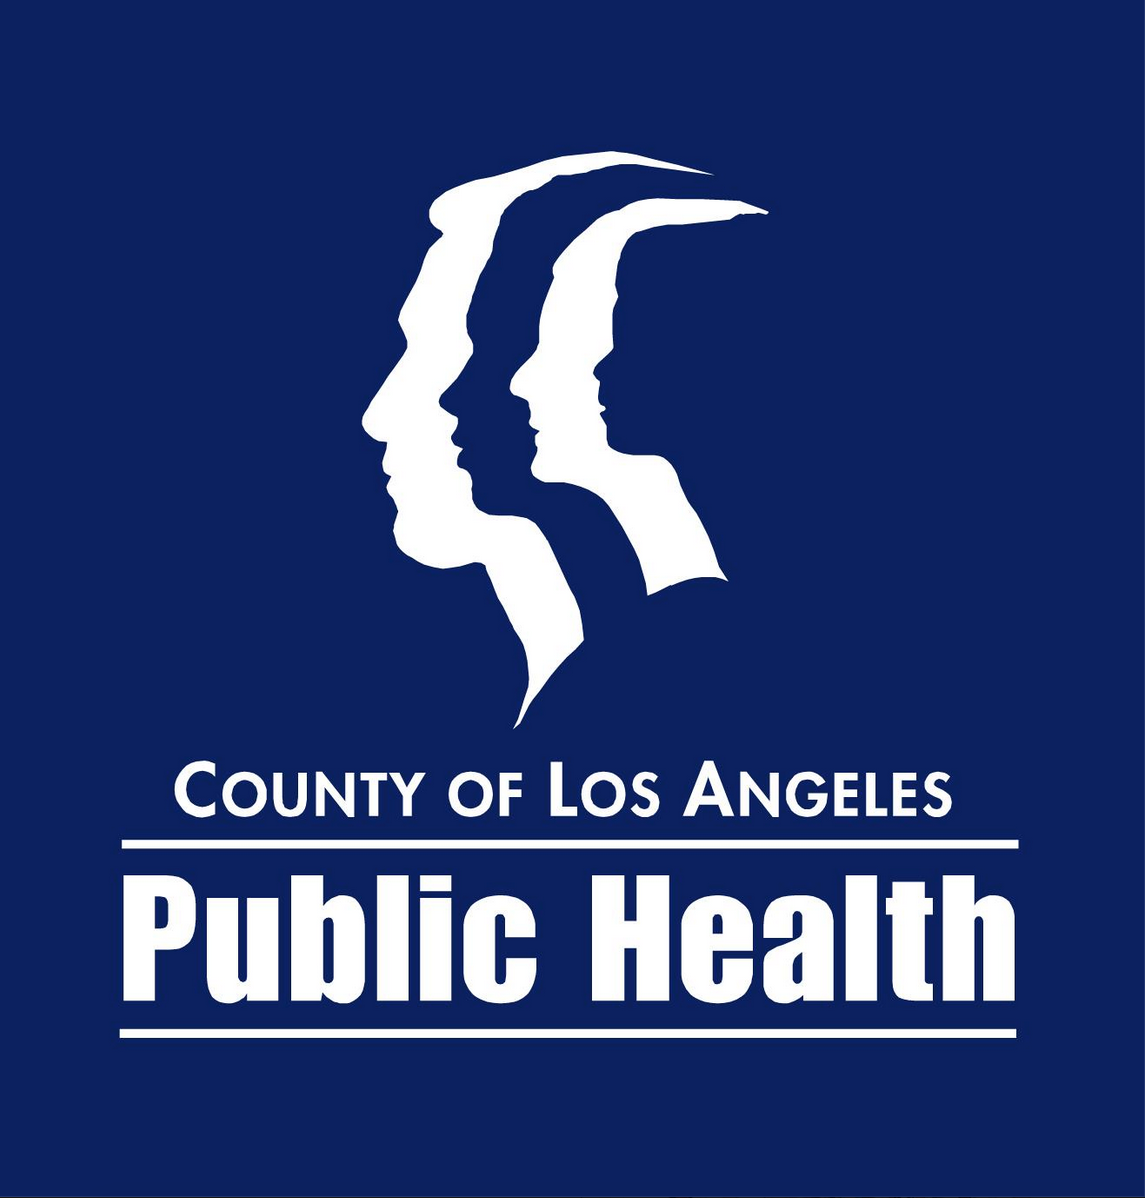 County of Los Angeles Public Health